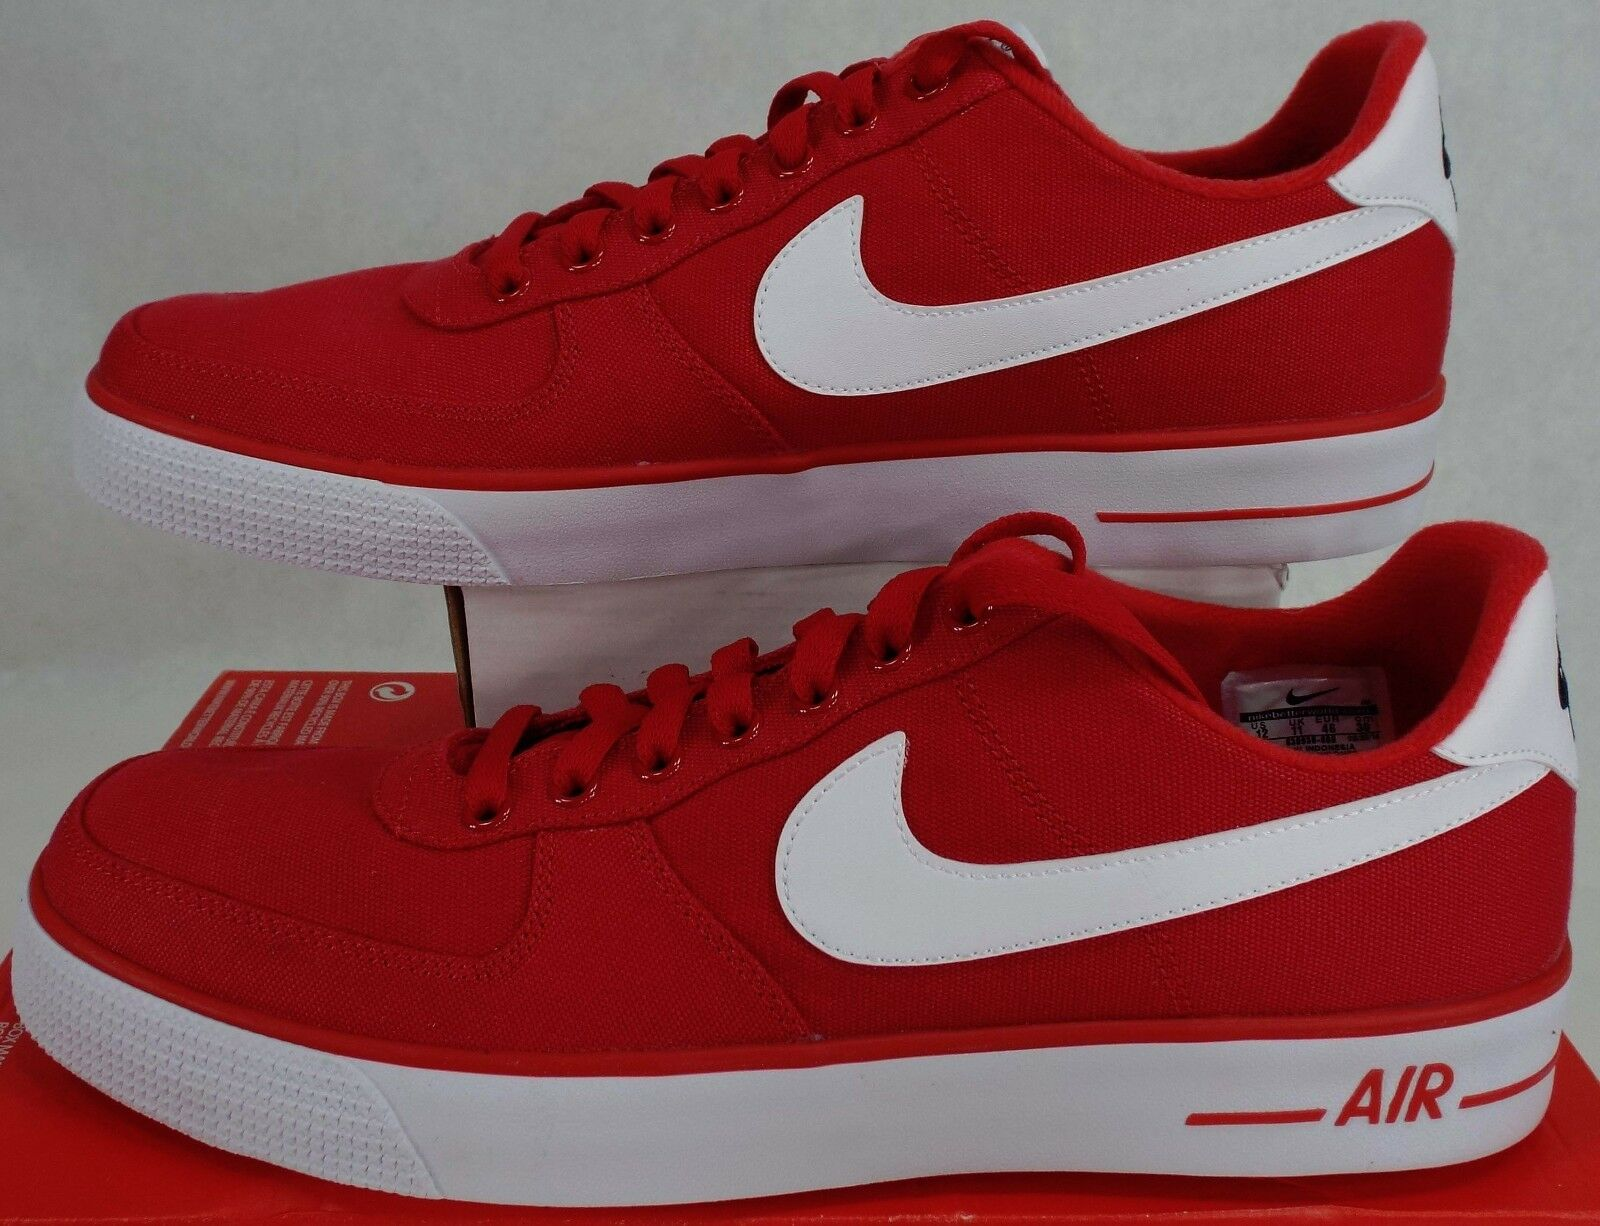 New Mens 12 NIKE Air Force 1 AC University Red White Shoes 75 630939-600